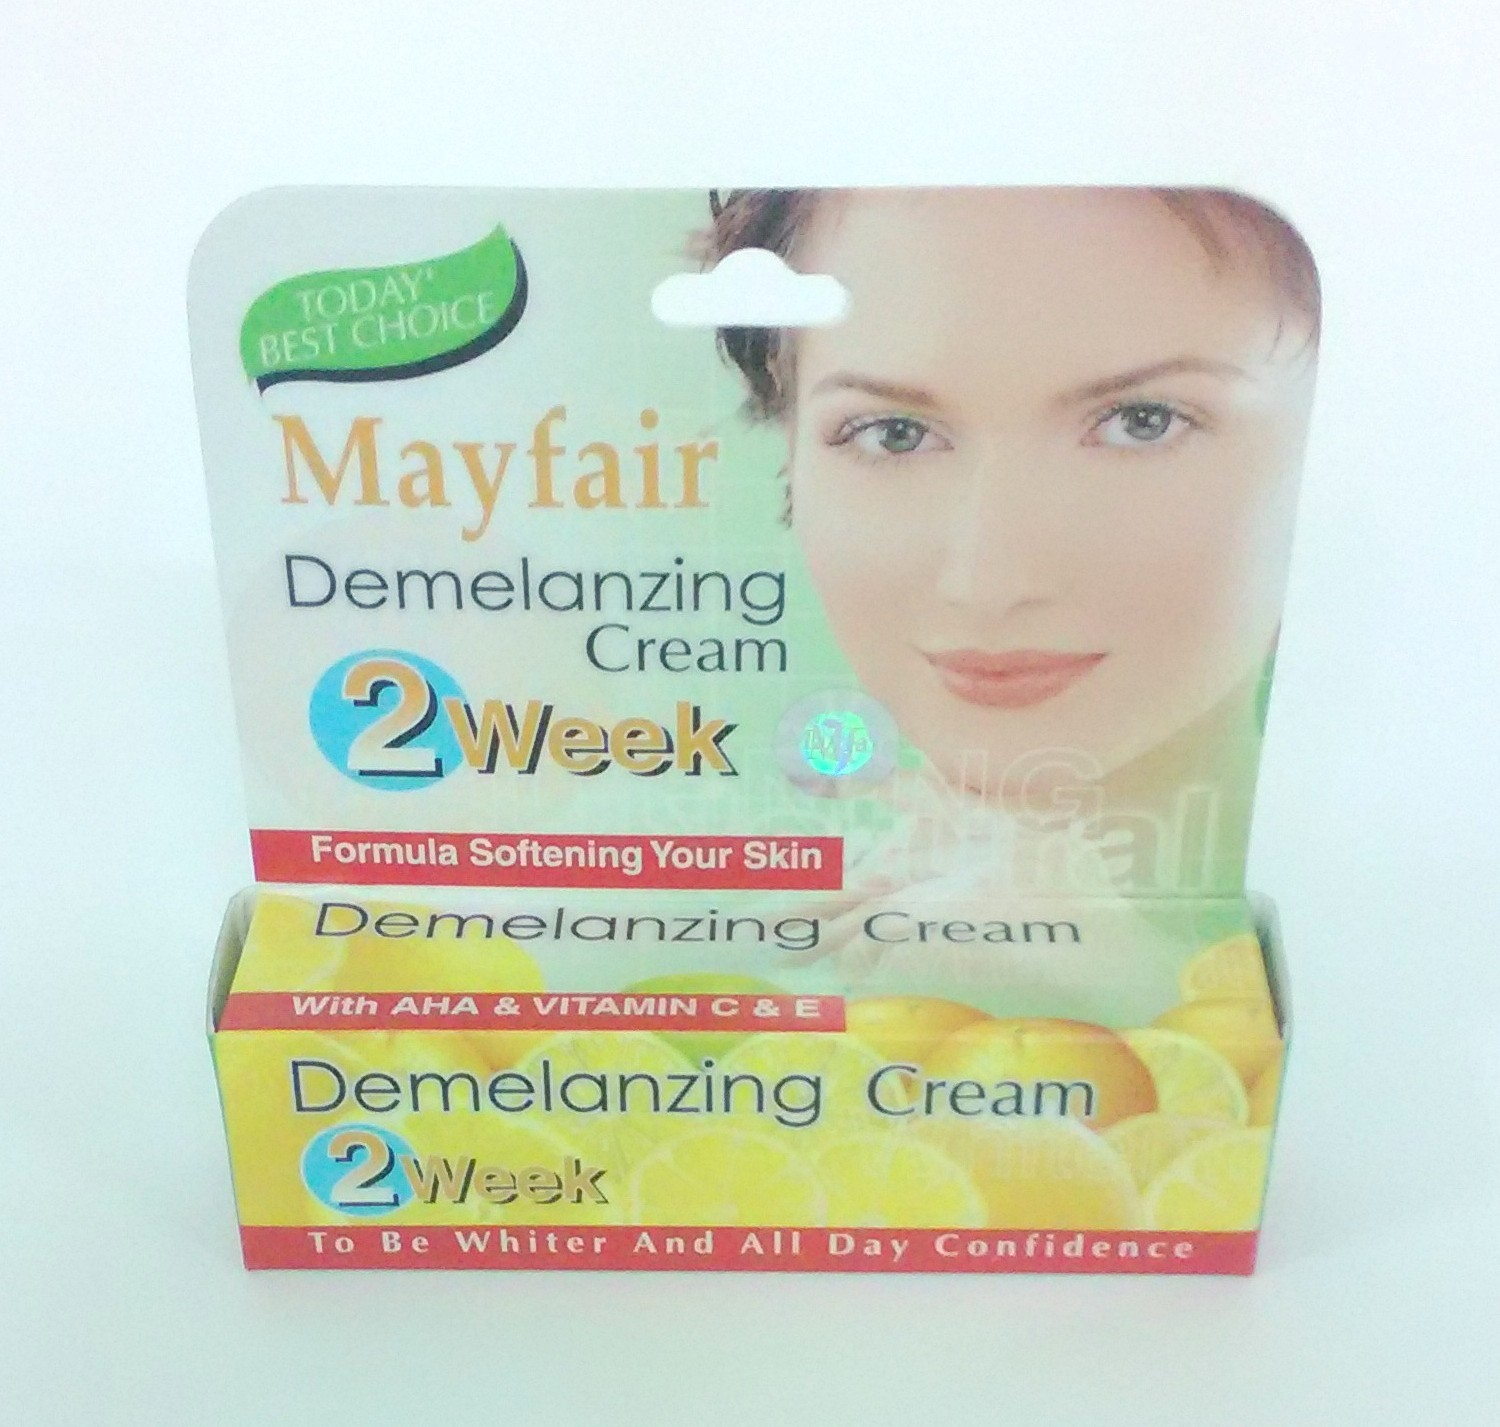 Mayfair Demelanzing Cream 2Week シミ